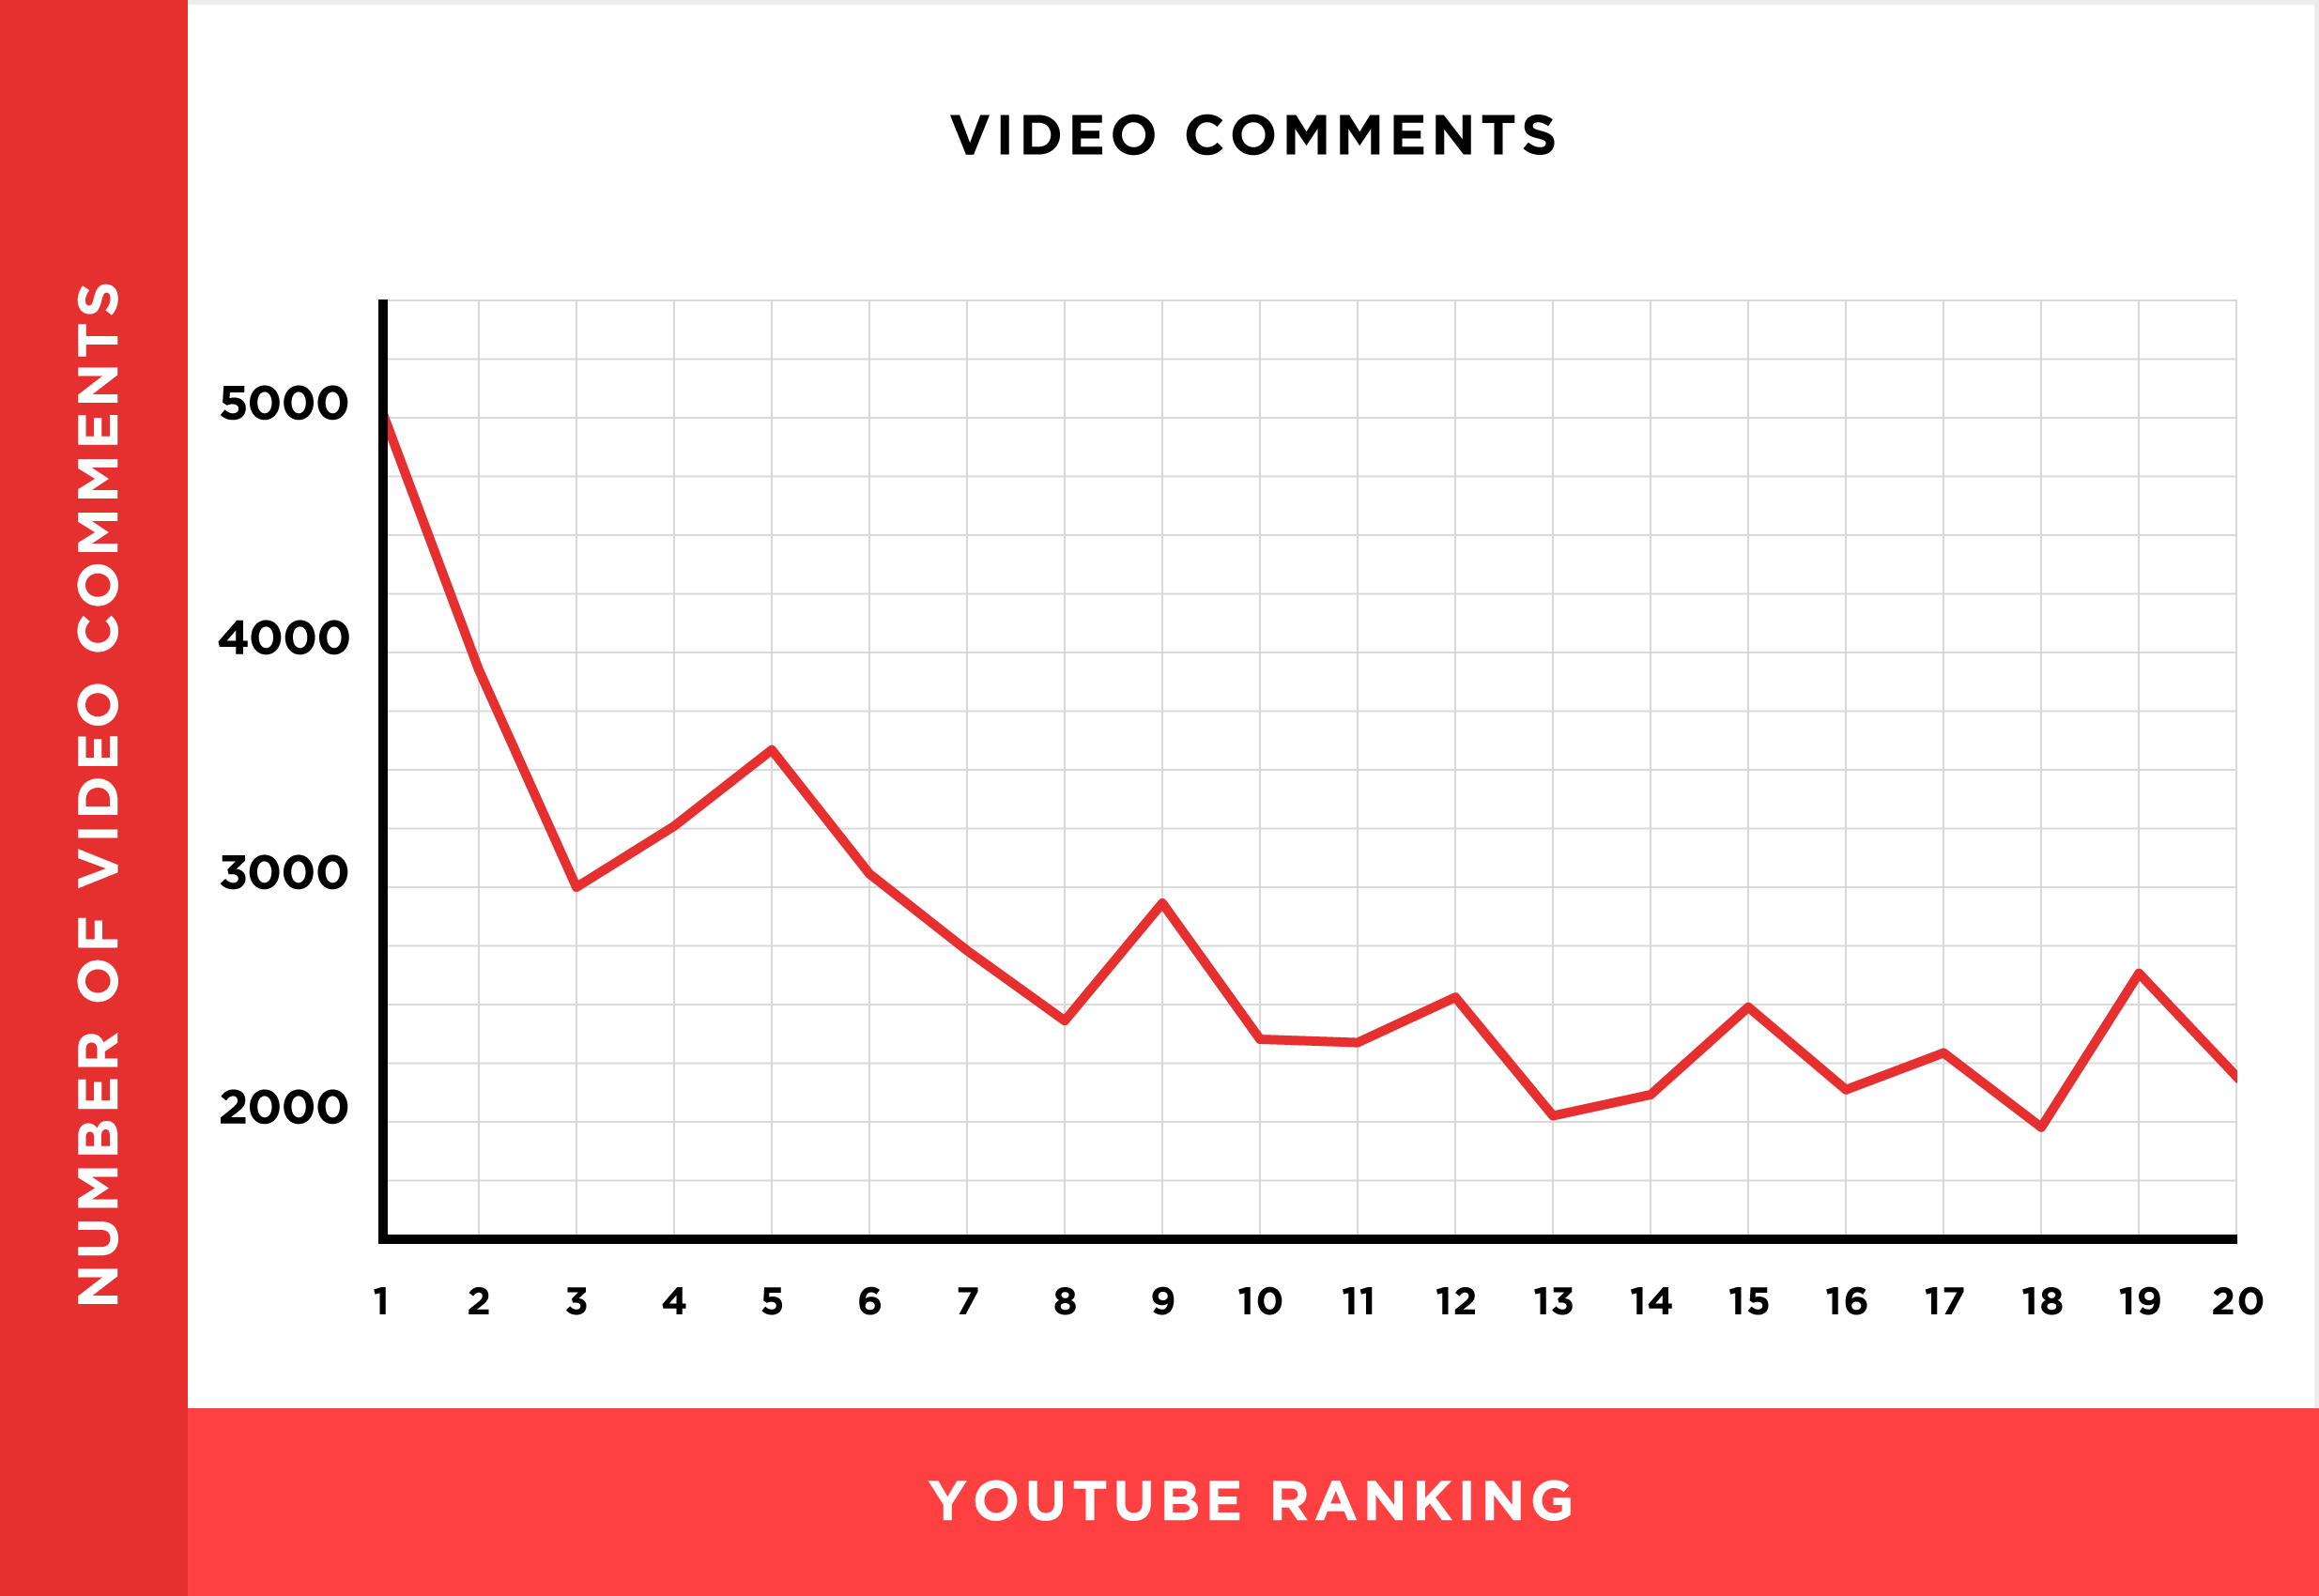 SEO for video. Number of video comments.